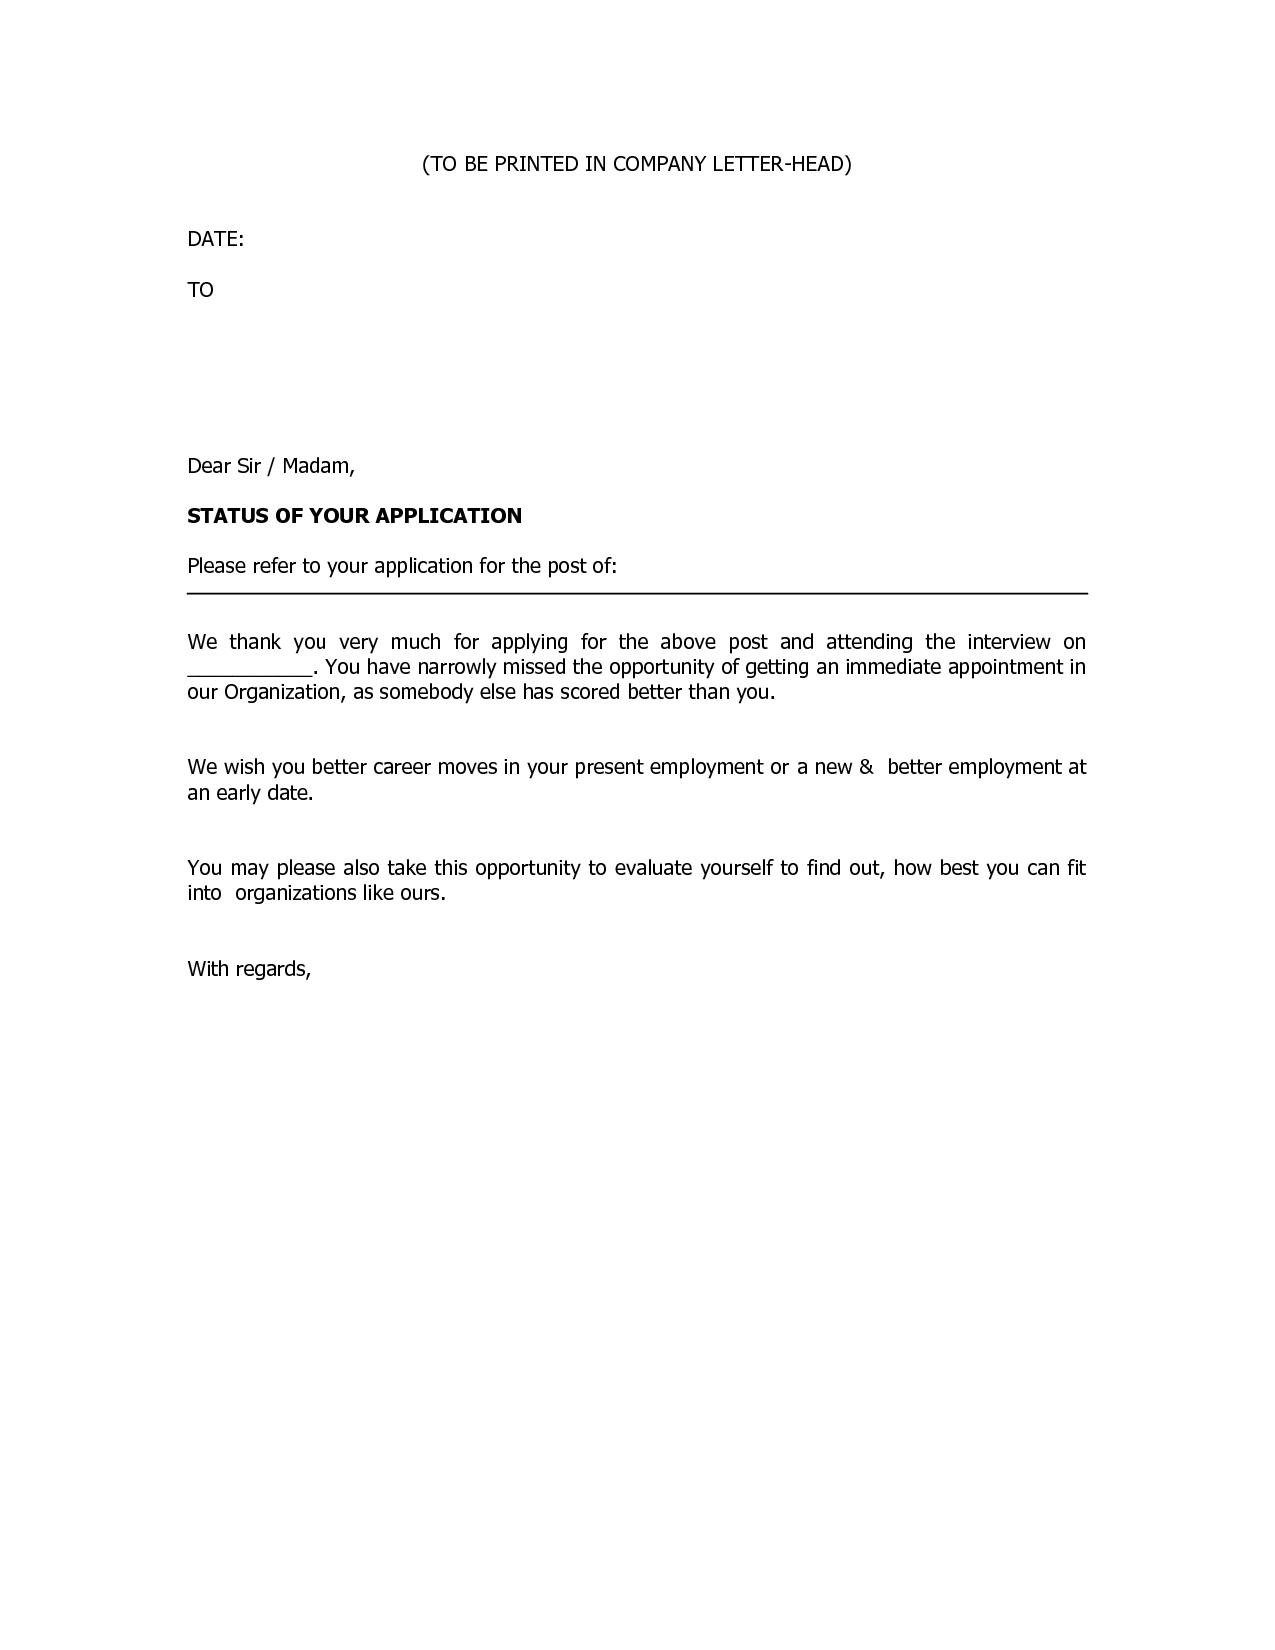 Business rejection letter rejection letters are usually addressed business rejection letter rejection letters are usually addressed to applicants who are not qualified for the job we offered how to write rejection thecheapjerseys Image collections